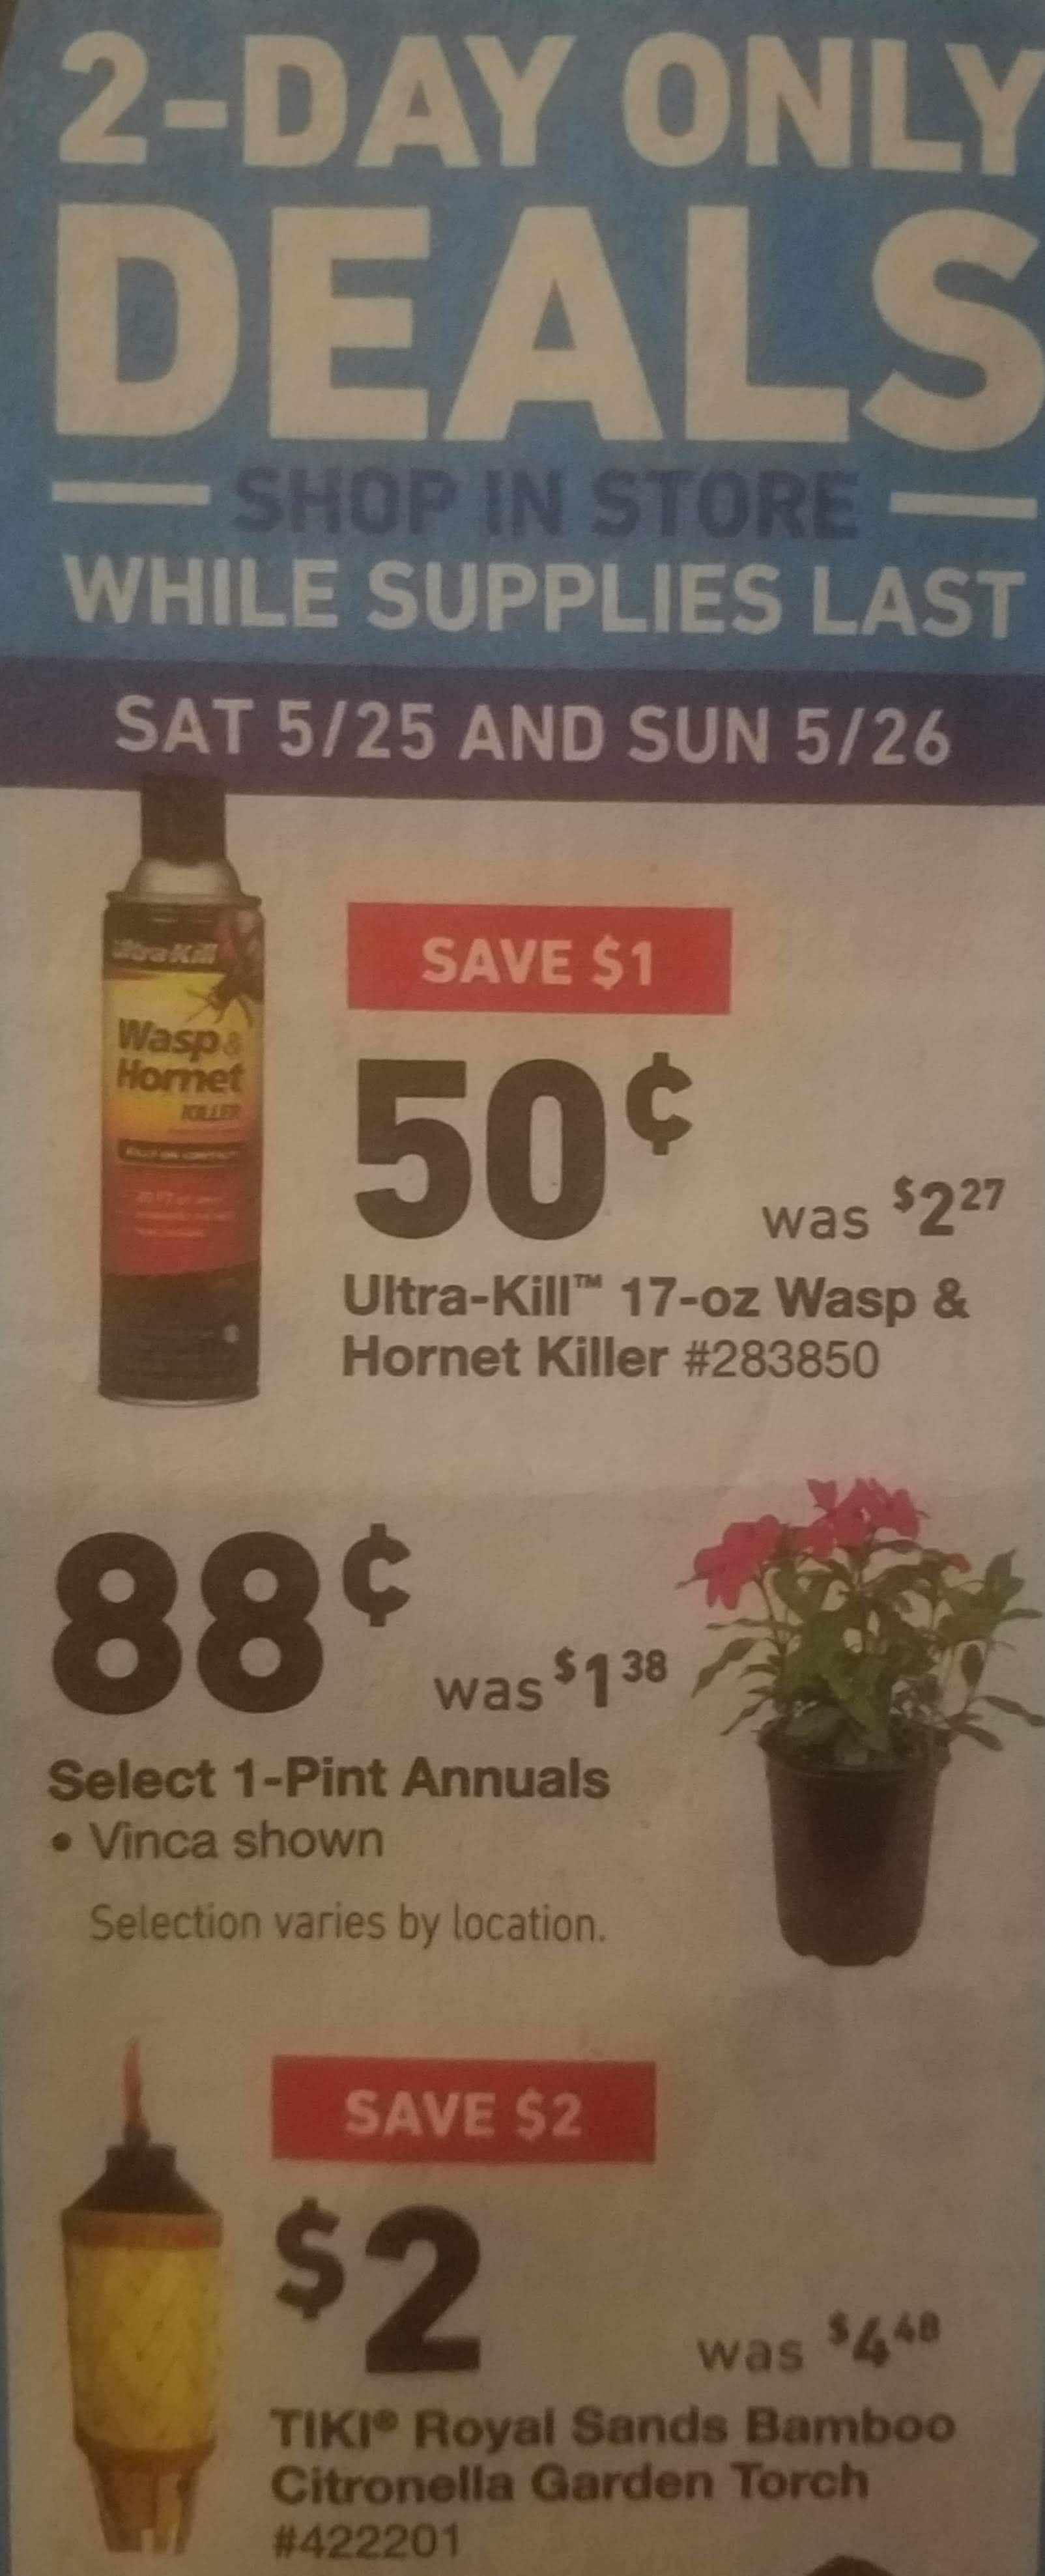 Lowe's Memorial Day 2-Day Only Deals $0.50-$69.00